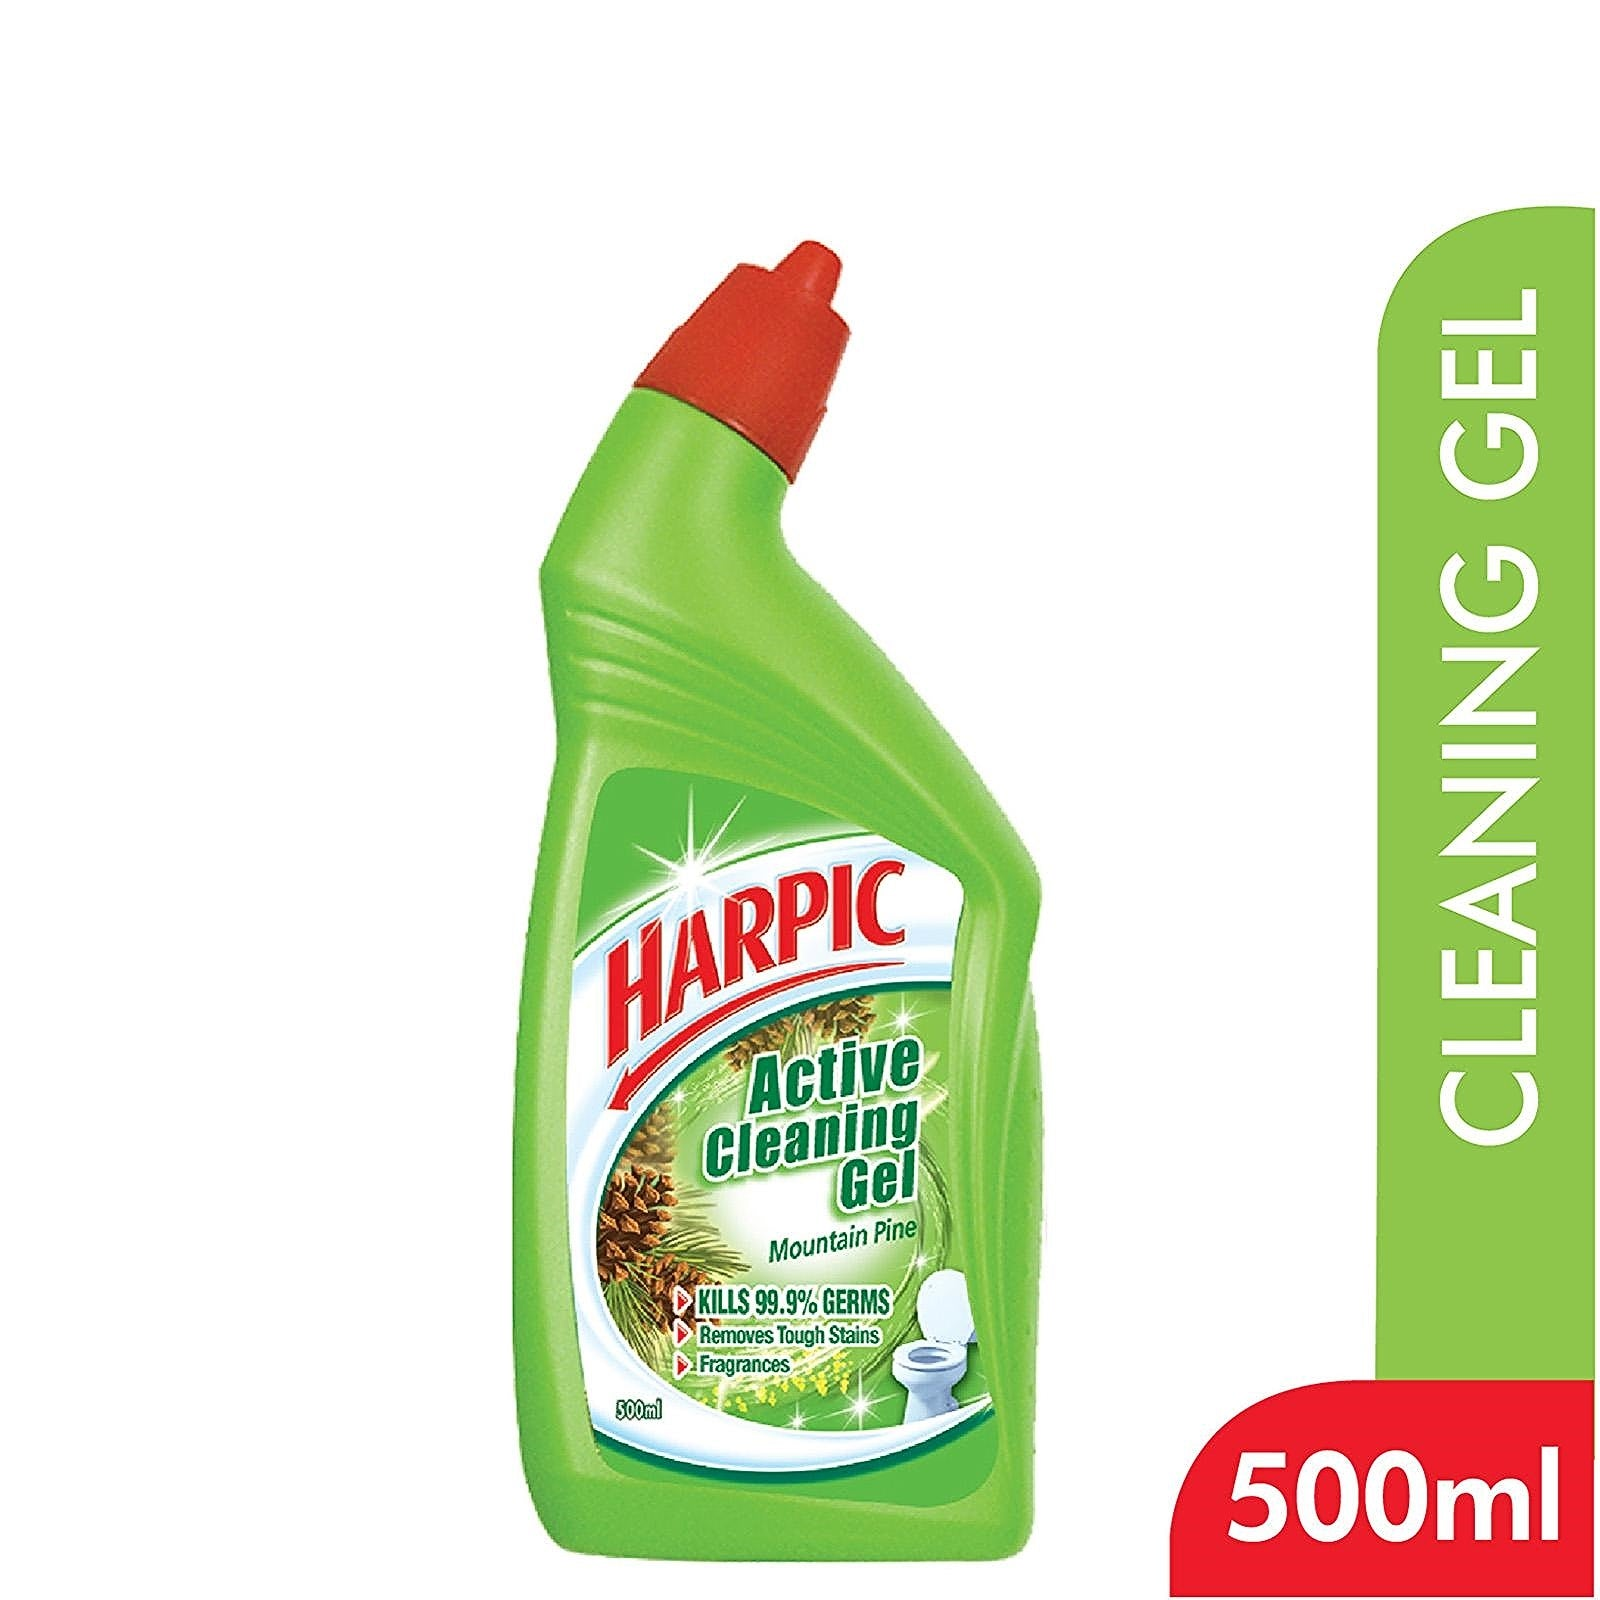 Harpic Active Cleaning Gel 3x500ml Mountain Pine